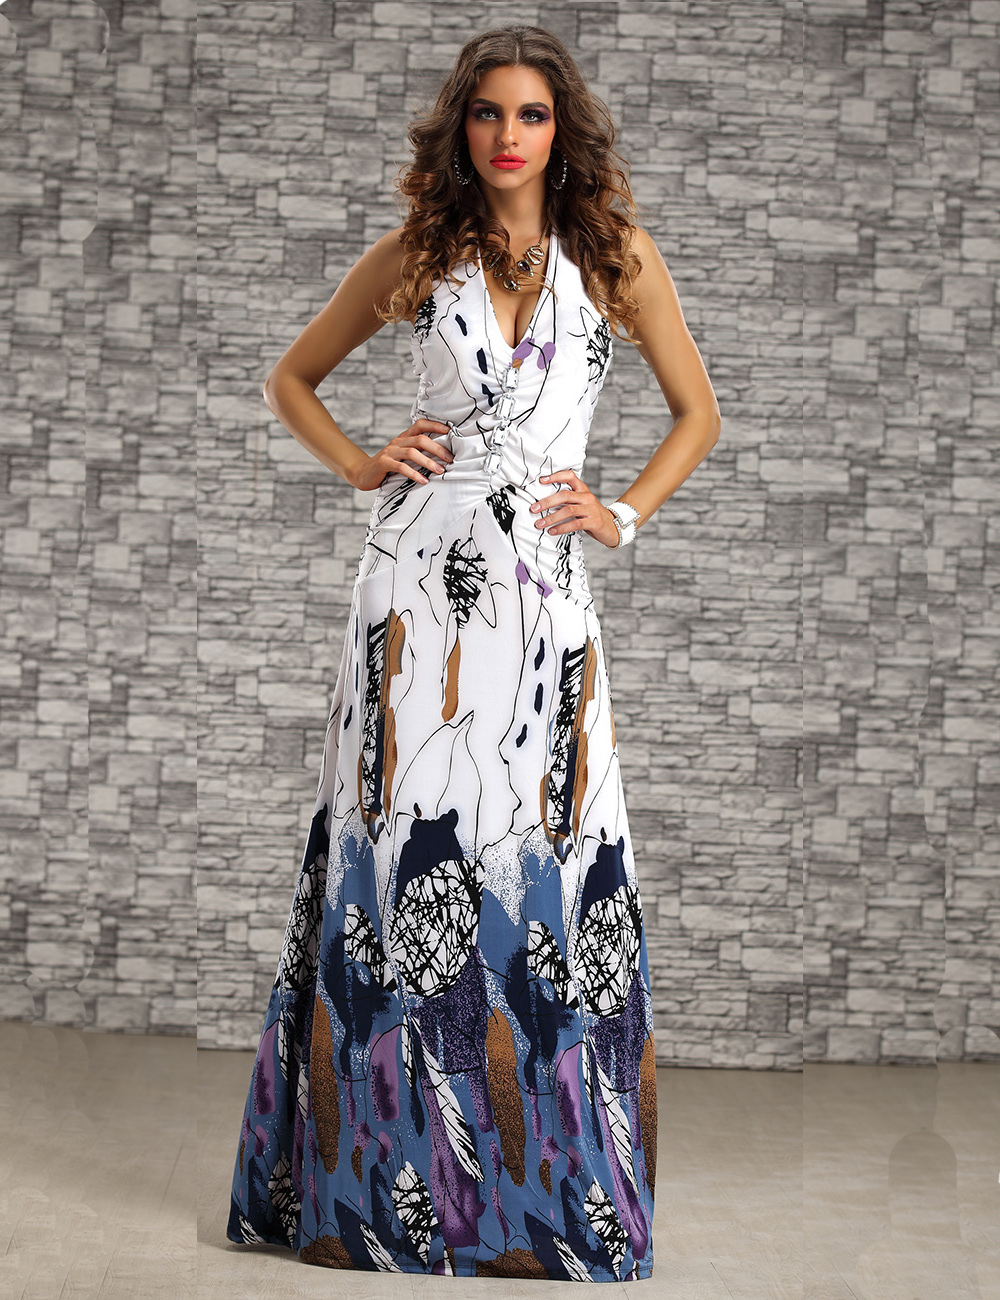 455f21fef3e1 New Arrive Fashion Sleeveless Halter Neck Ladies Long Maxi Dress Summer  Beach Dresses For Women-in Dresses from Women's Clothing on Aliexpress.com  | Alibaba ...